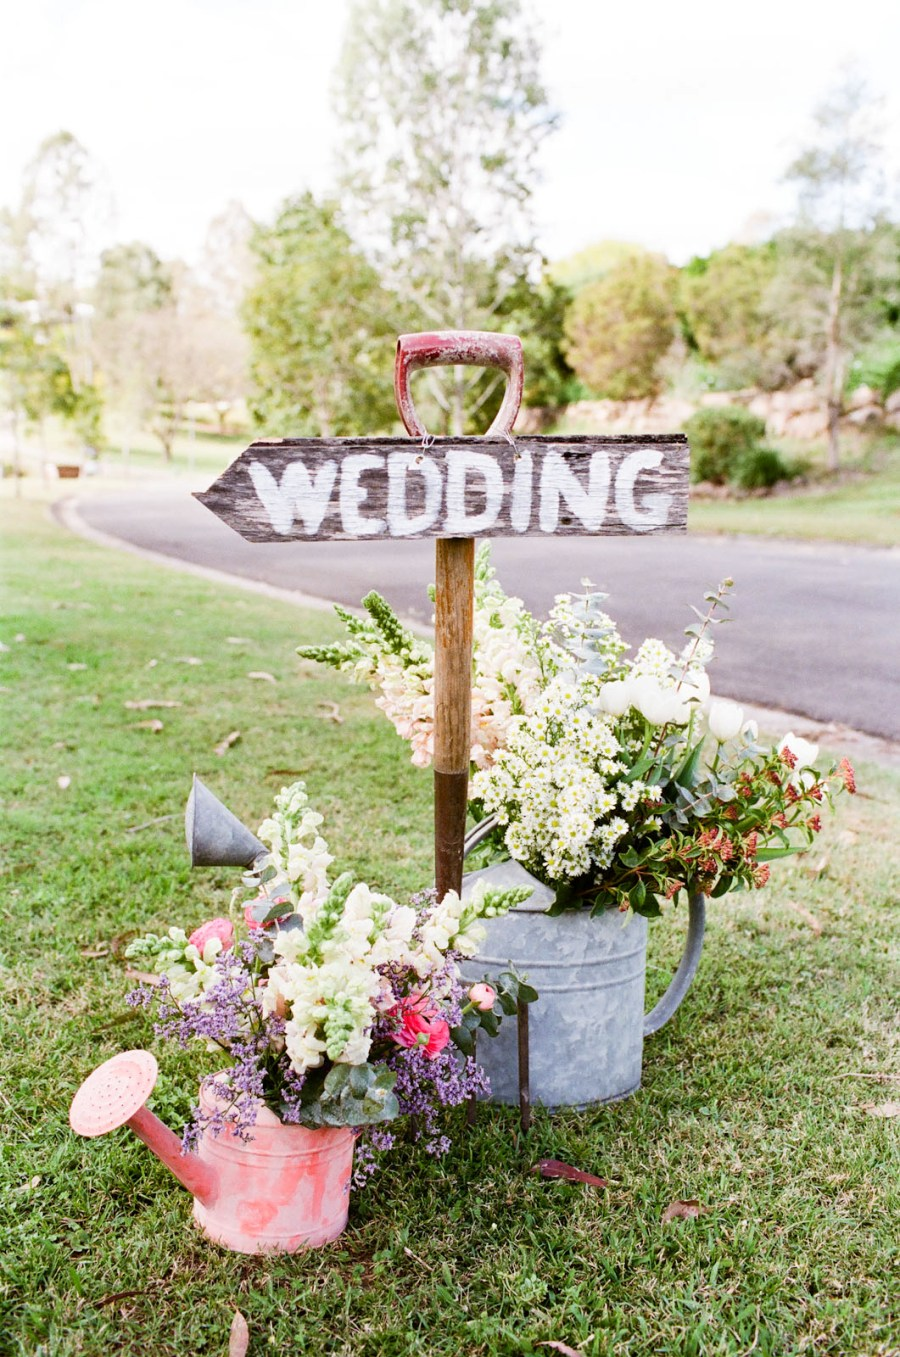 Wooden handled shovel wedding decor